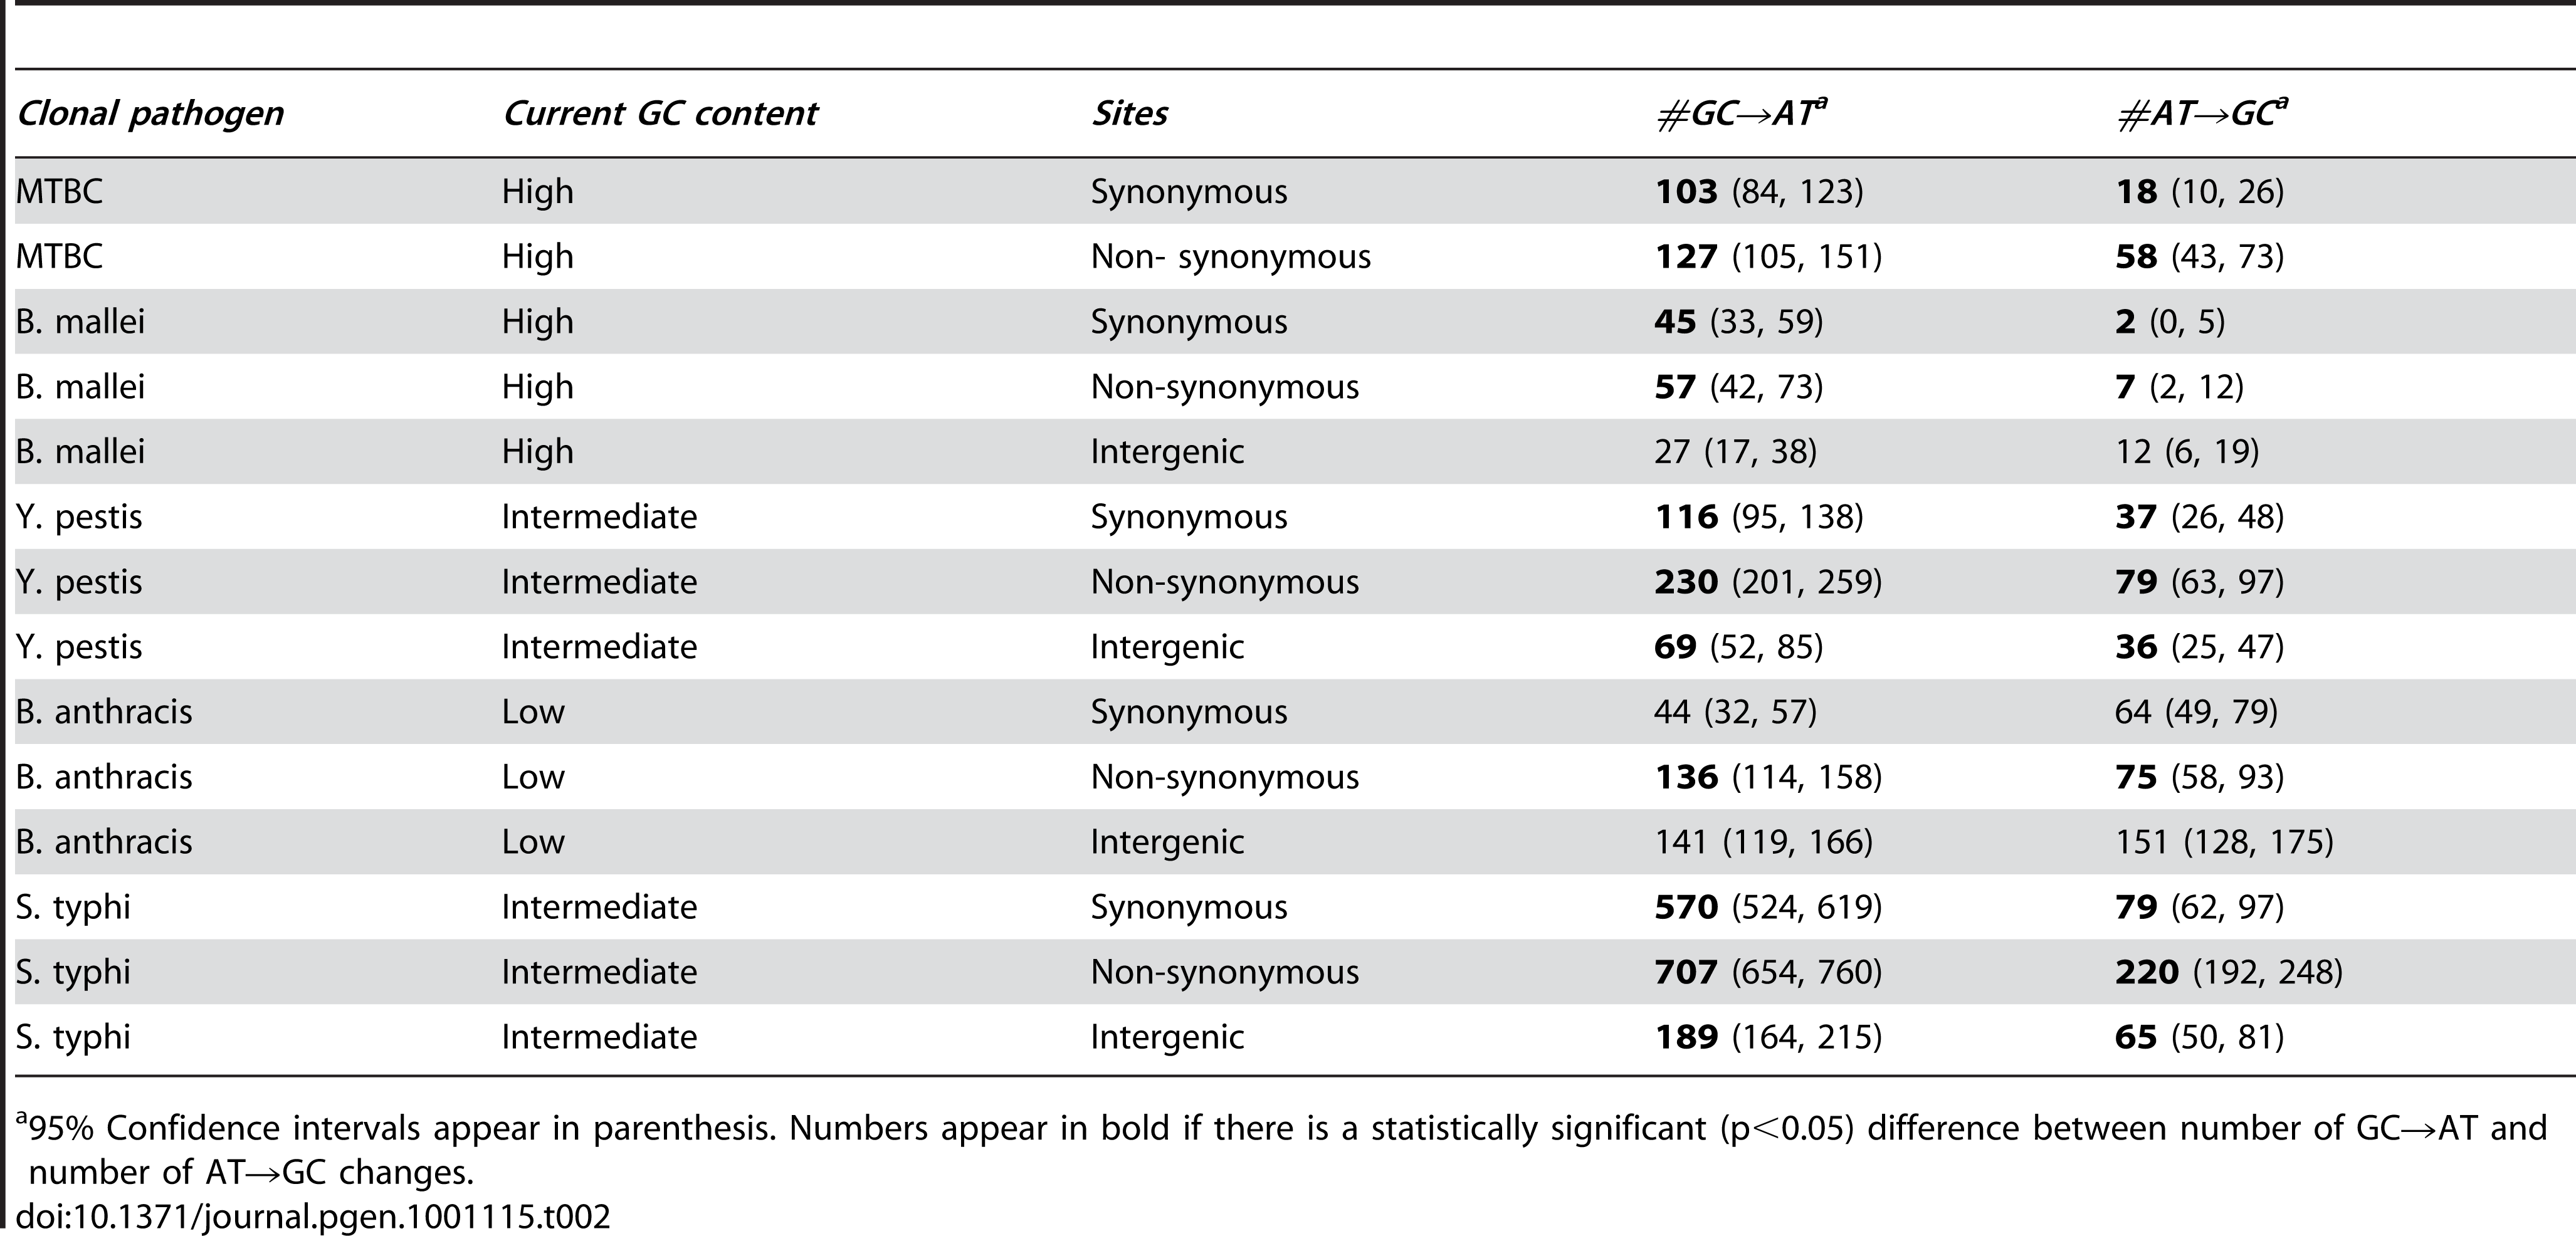 Nucleotide contents of clonal pathogens with intermediate and high GC contents are far from equilibrium.